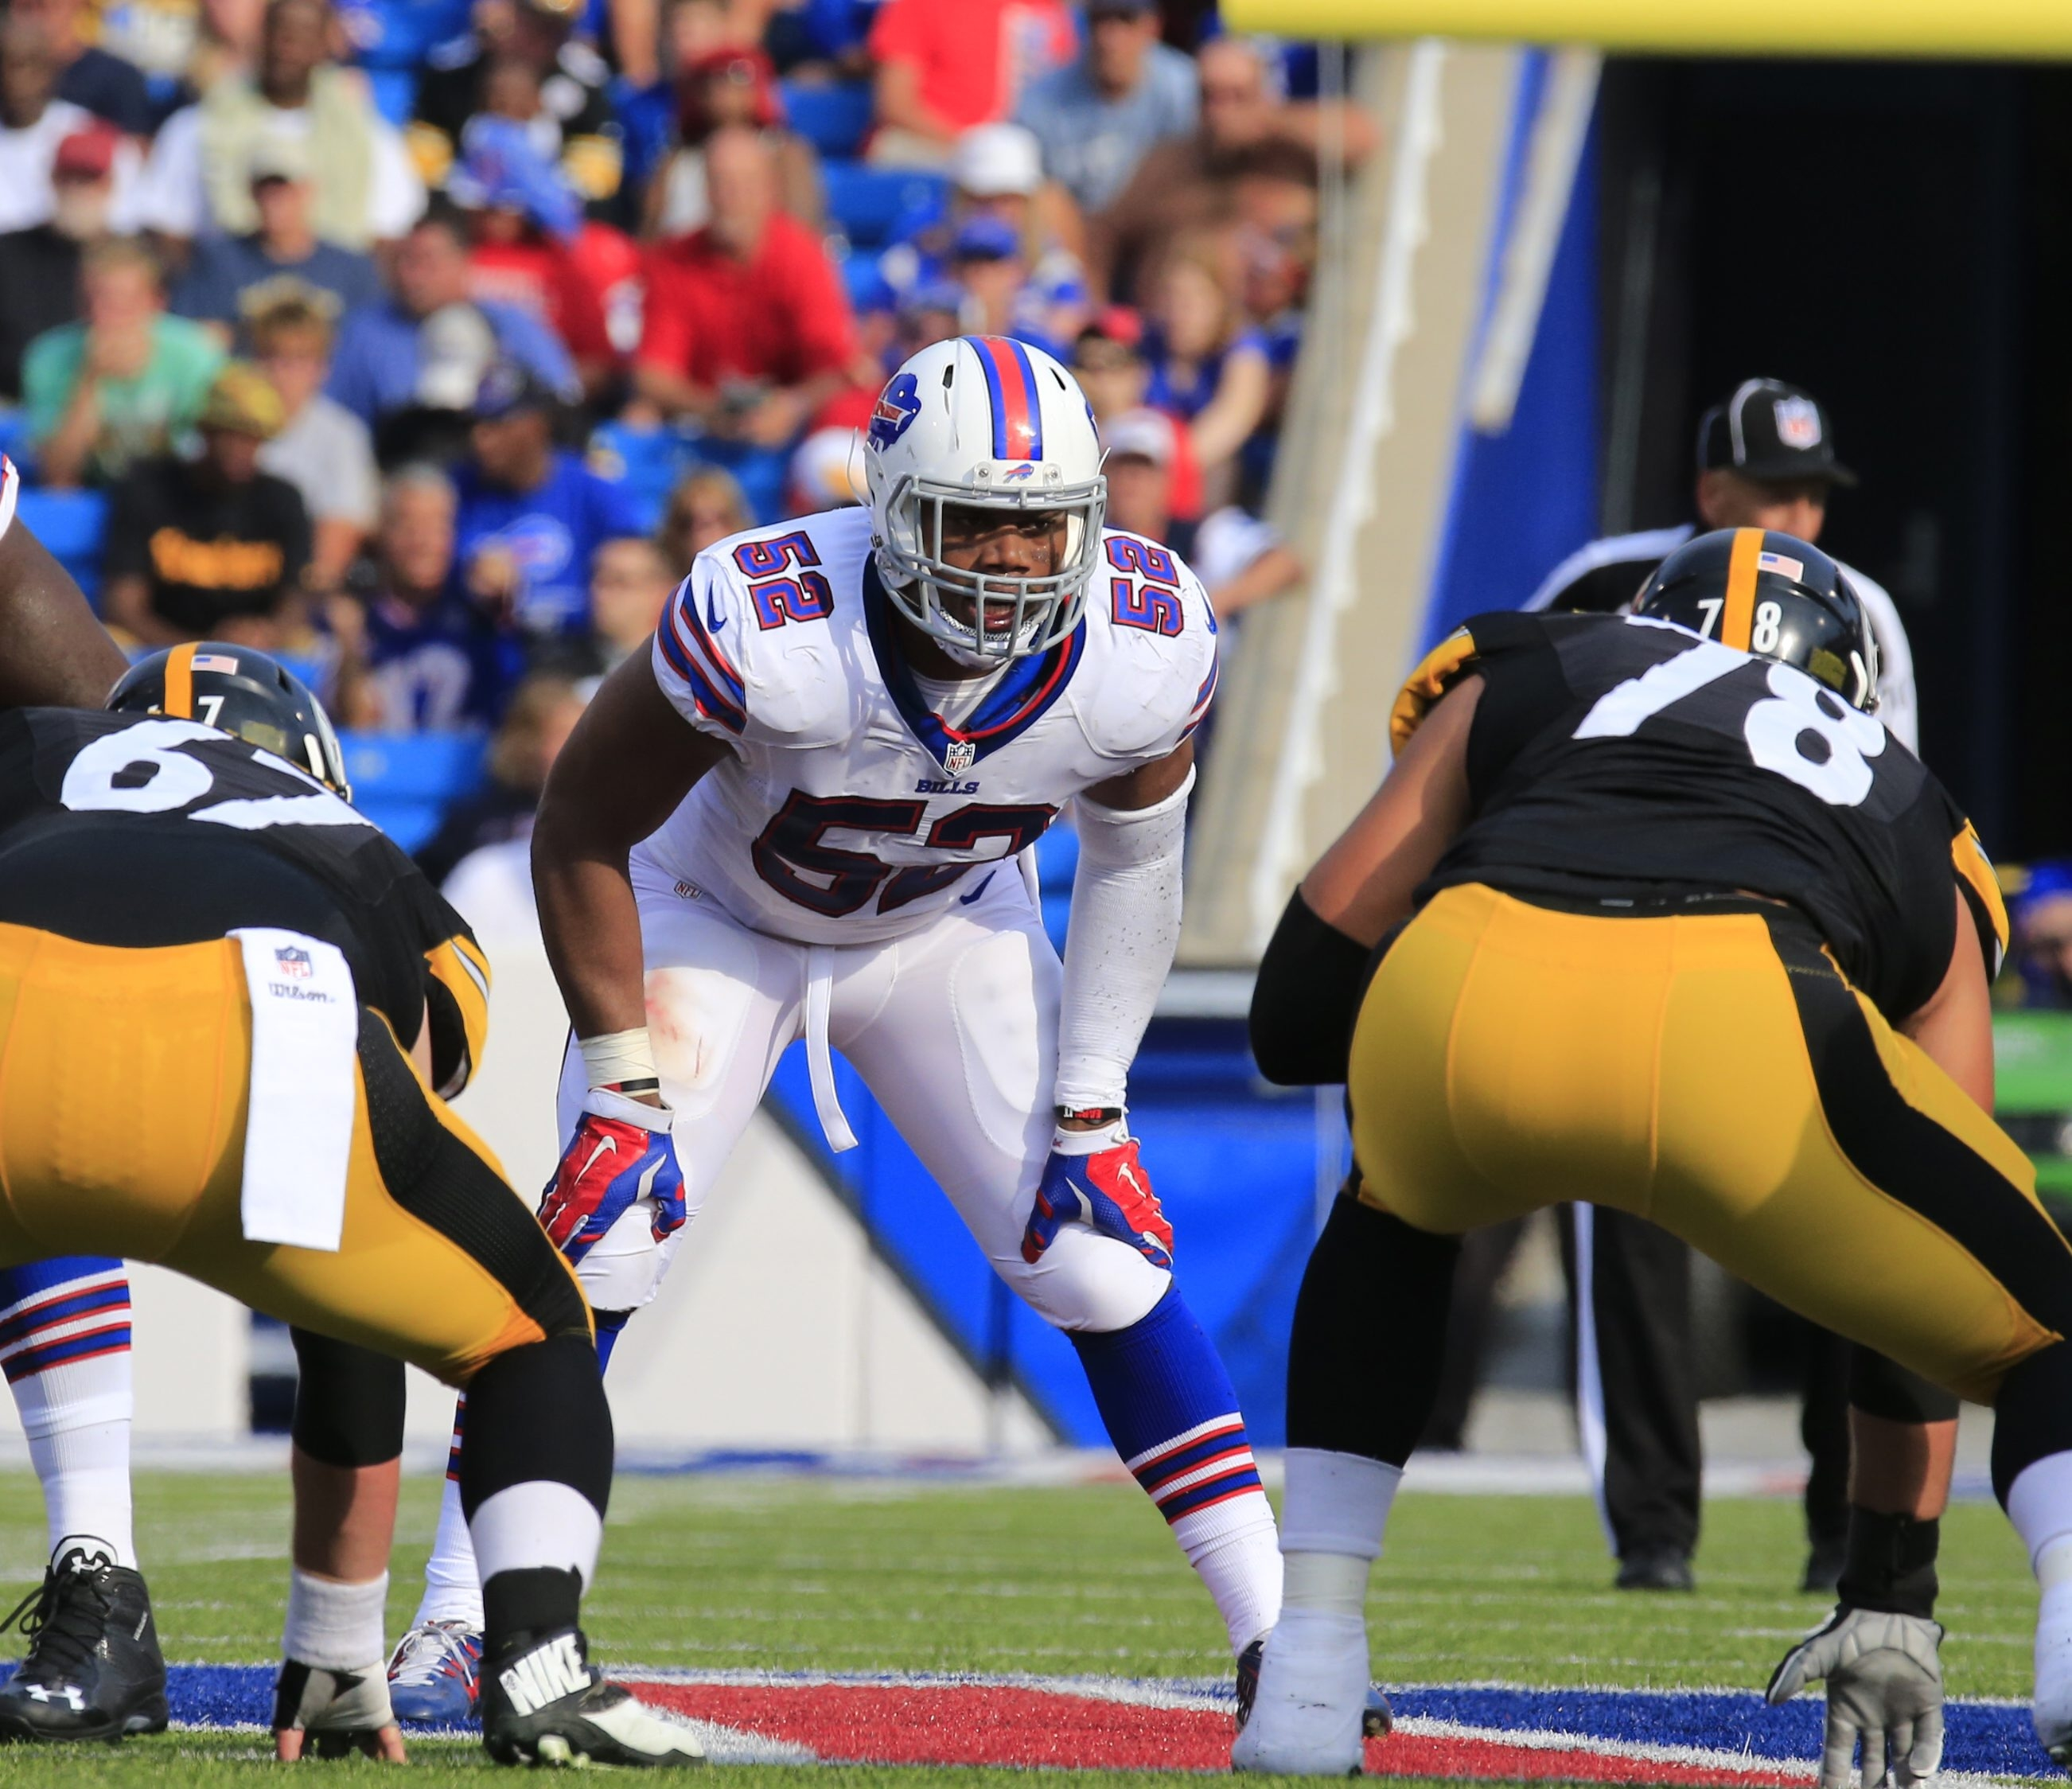 """Bills linebacker Preston Brown says that with all the team's injuries on offense, """"we've got to be that attacking, physical defense,"""" against the Jaguars on Sunday. """"So we have to send a lot of blitzes and get them off their spot."""""""